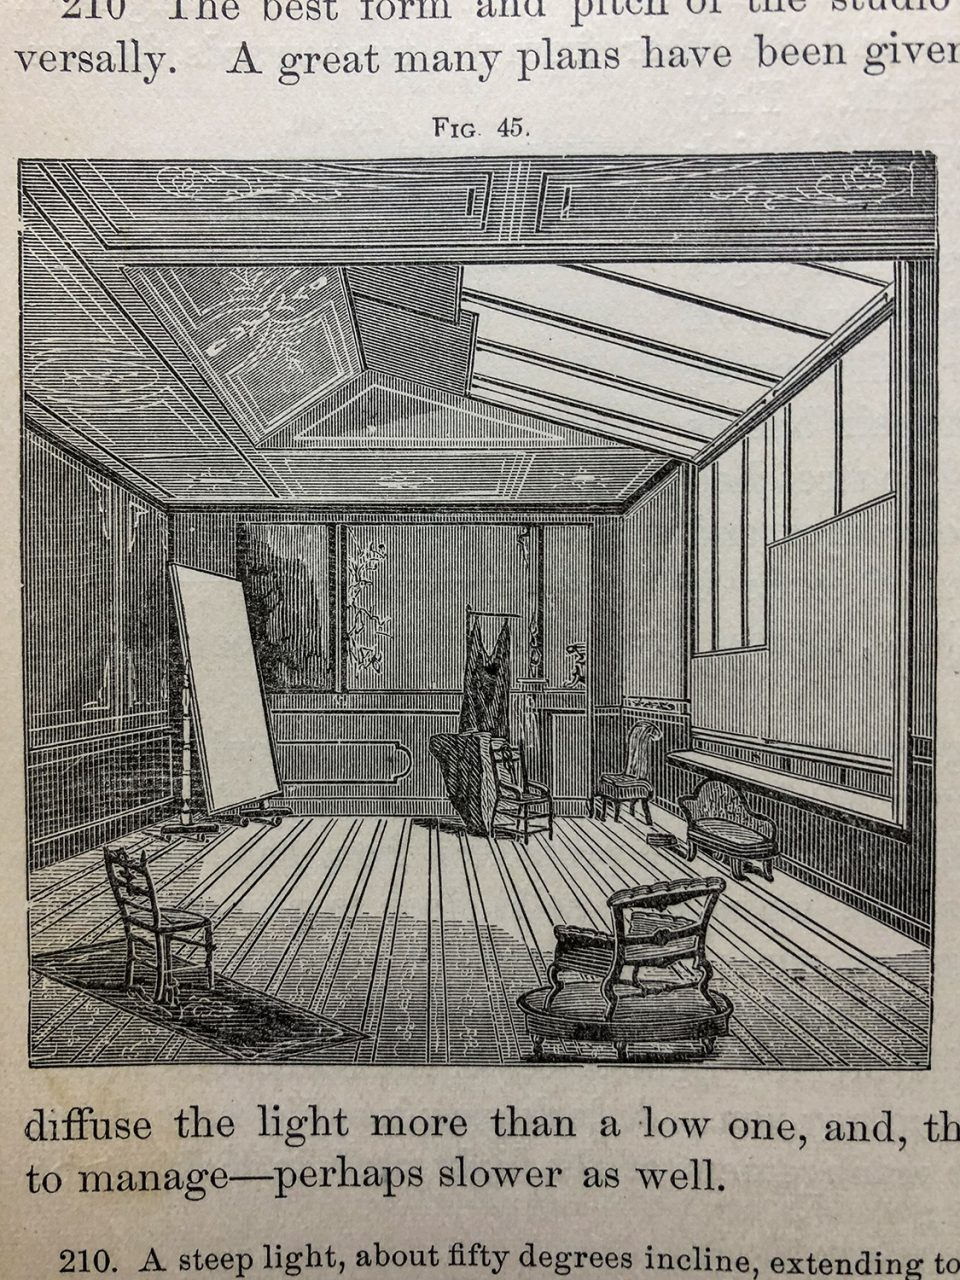 An illustration of one possible studio set up, with natural light from skylight windows, and a reflector along the wall. From Wilson's Photographics, published 1881.